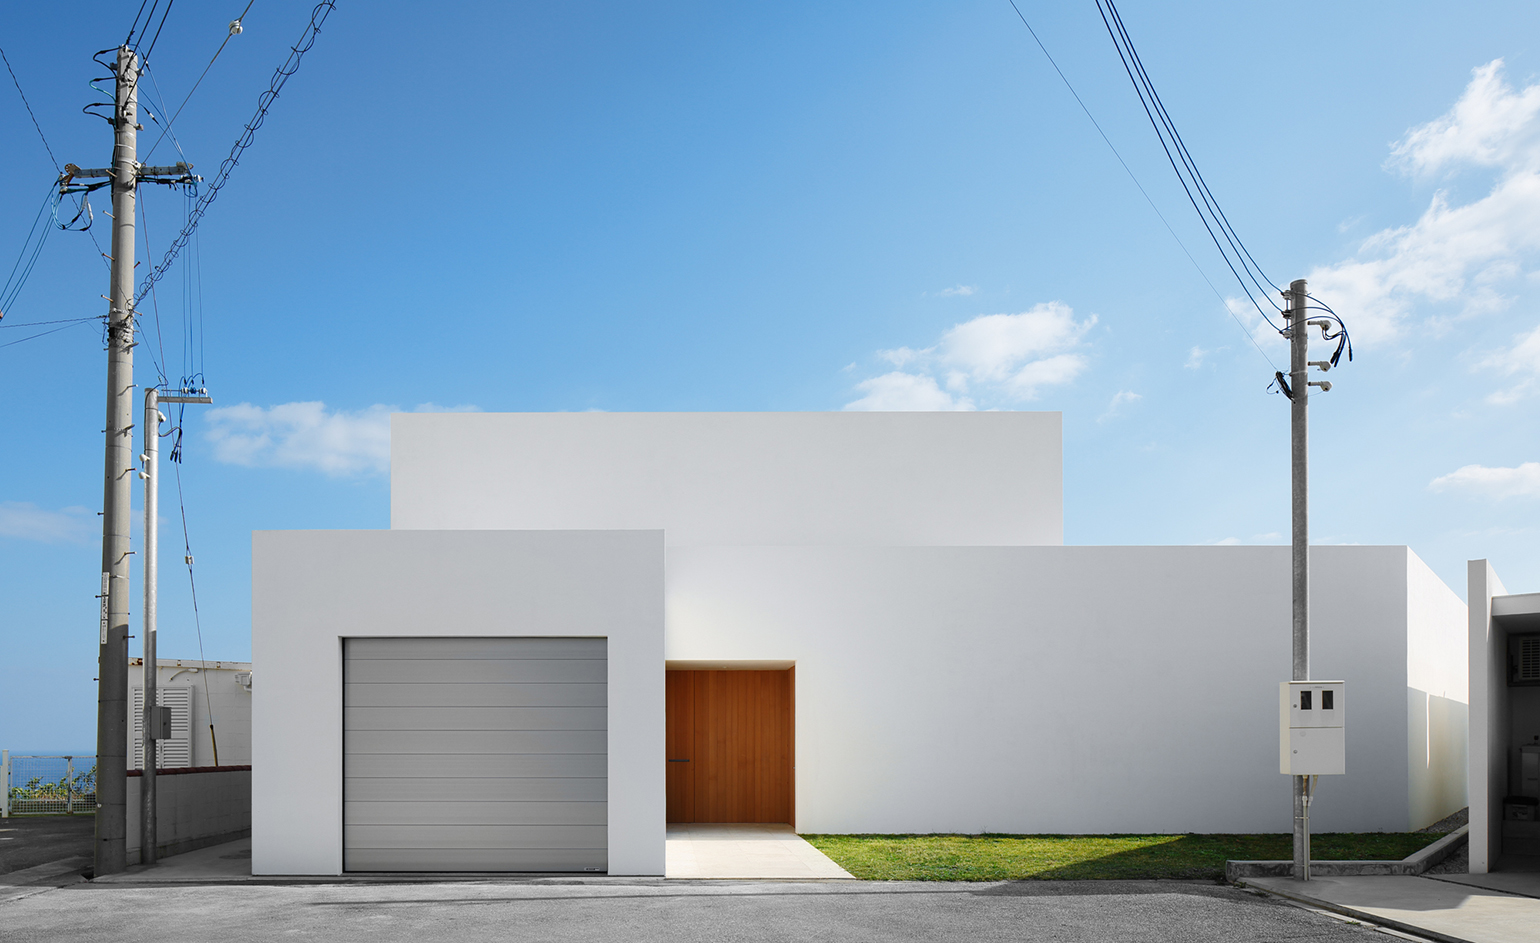 John pawson unveils minimalist japanese home in okinawa for Japanese minimalist house design